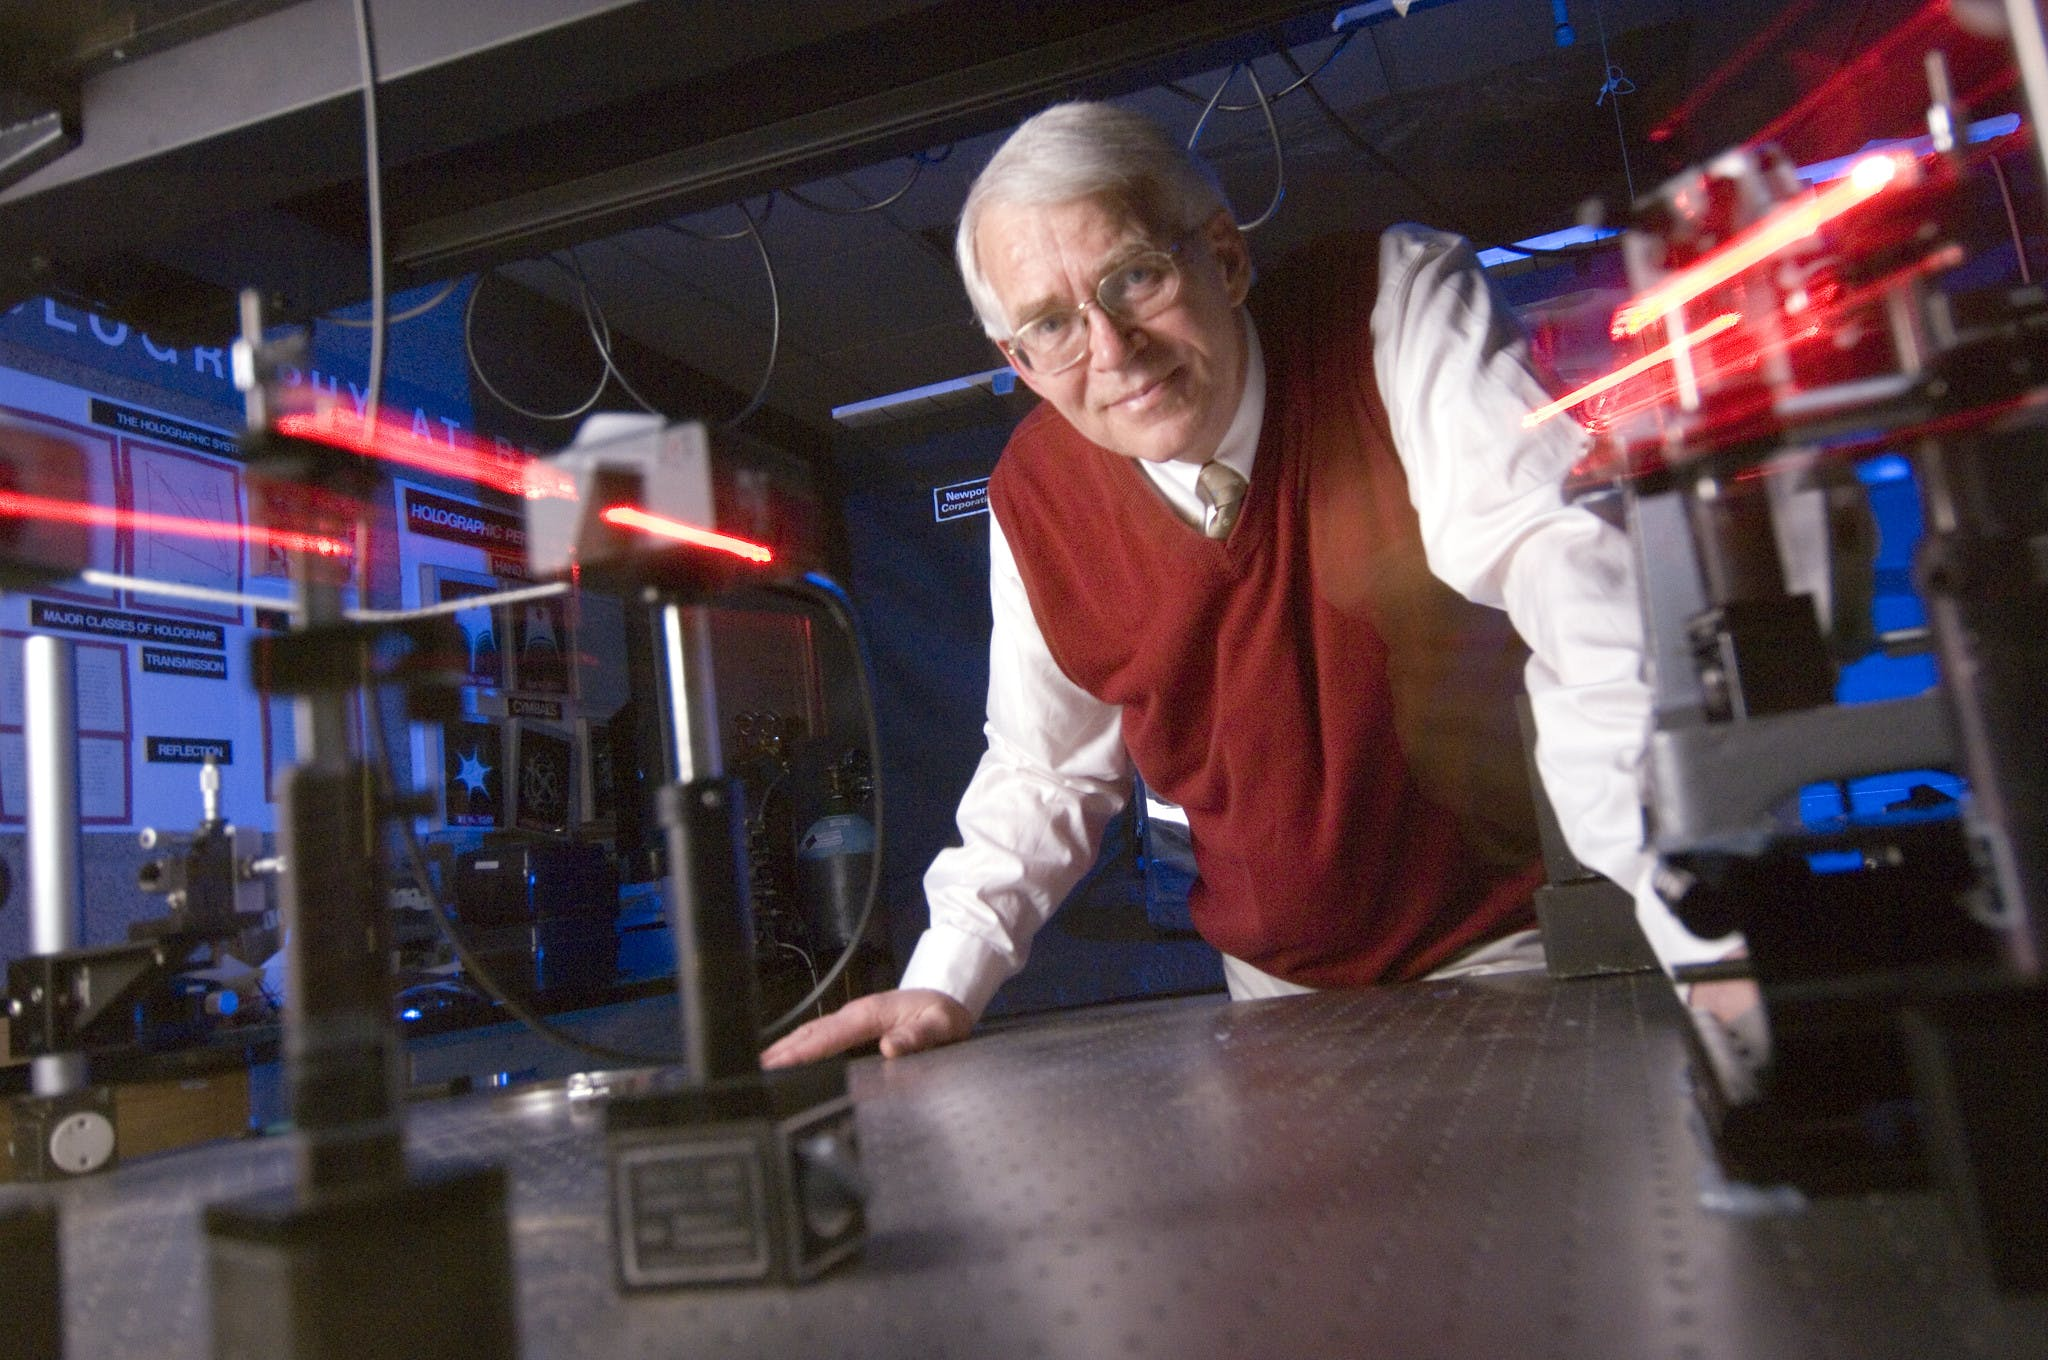 At Bethel, Peterson advocated for advancing research and high-level labs in the physics and engineering department.